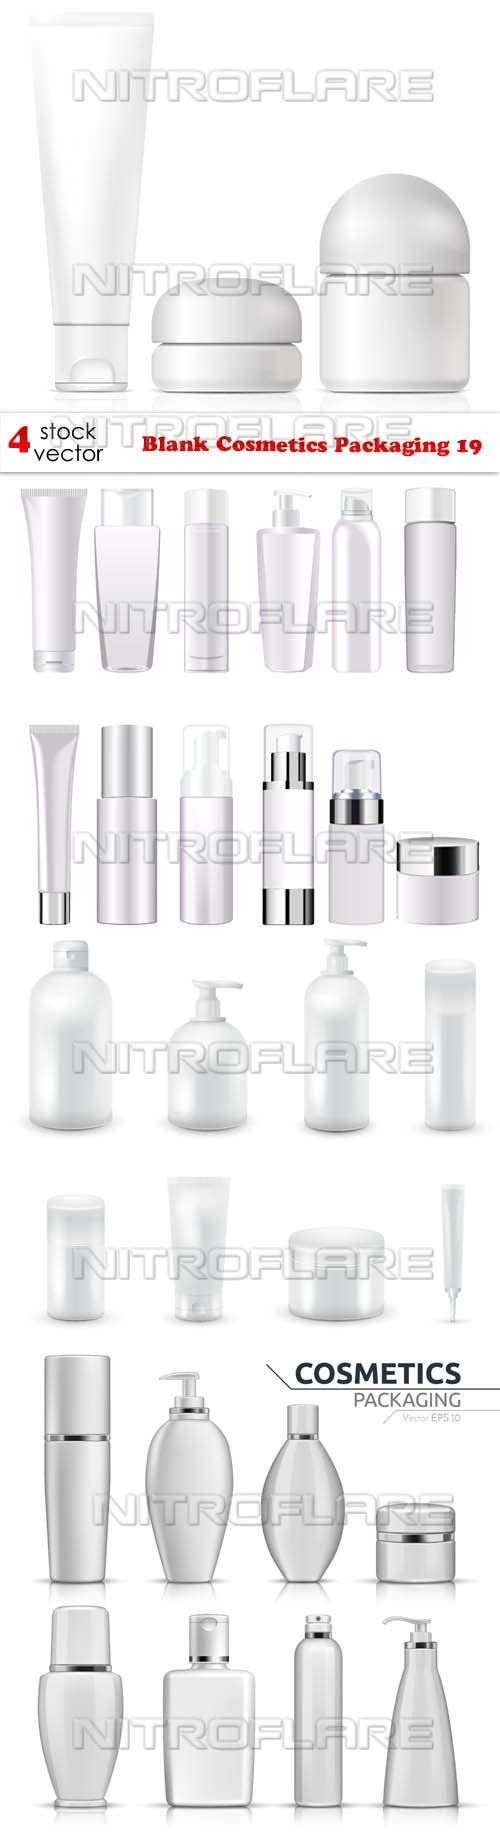 Vectors - Blank Cosmetics Packaging 19